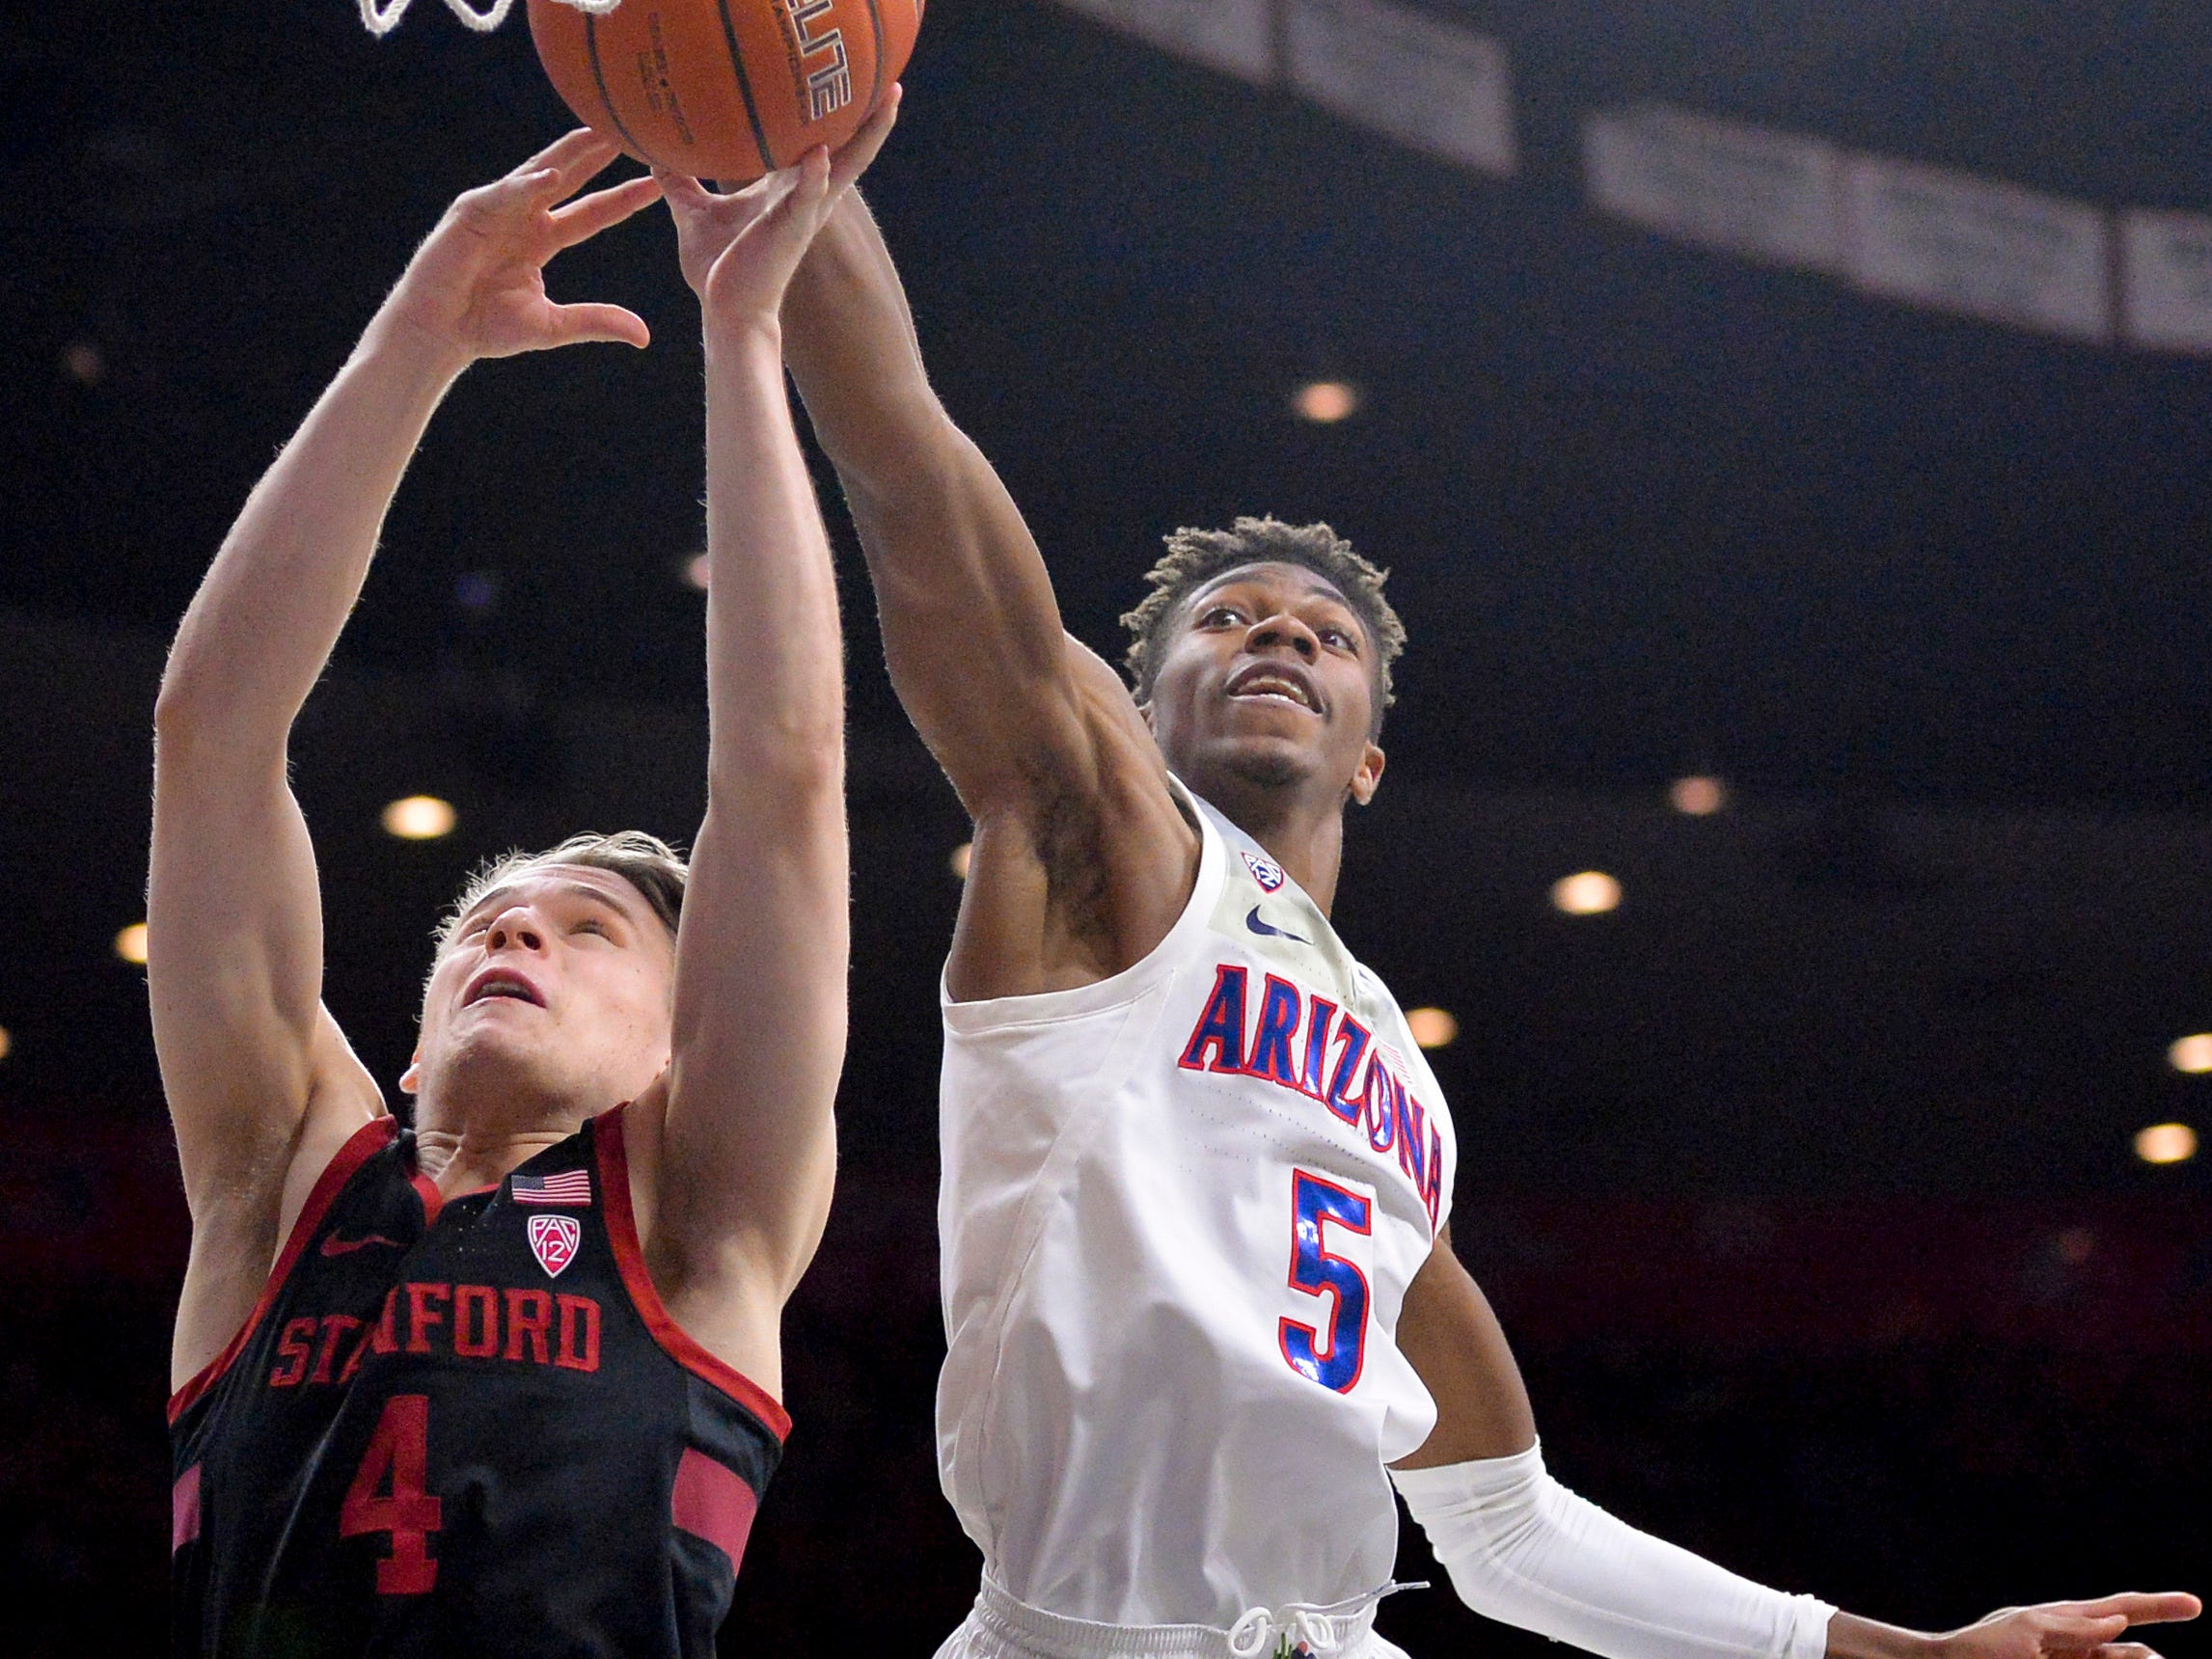 Feb 24, 2019: Stanford Cardinal guard Isaac White (4) and Arizona Wildcats guard Brandon Randolph (5) battle for a rebound during the second half at McKale Center.